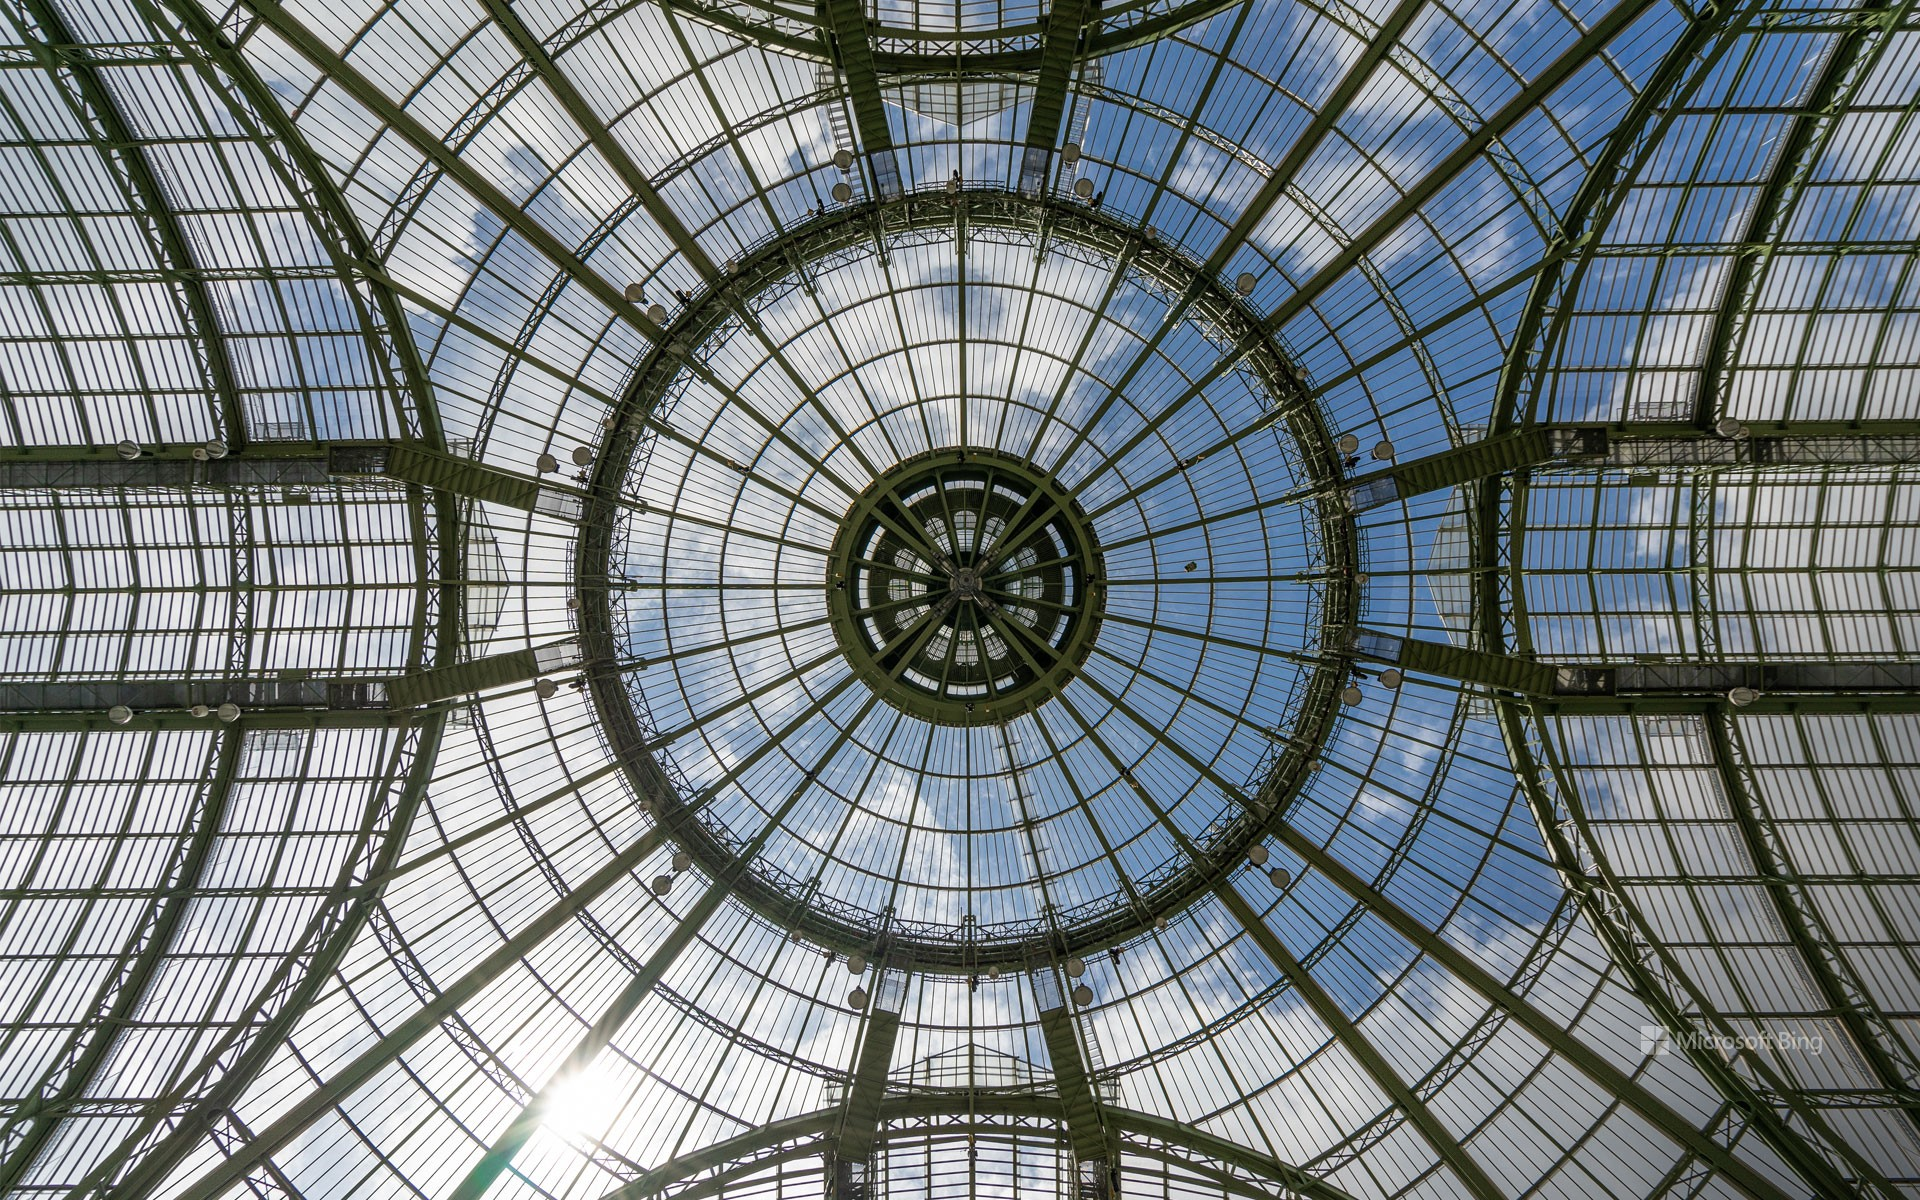 Vaulted ceiling of the Grand Palais in glass and steel, Paris